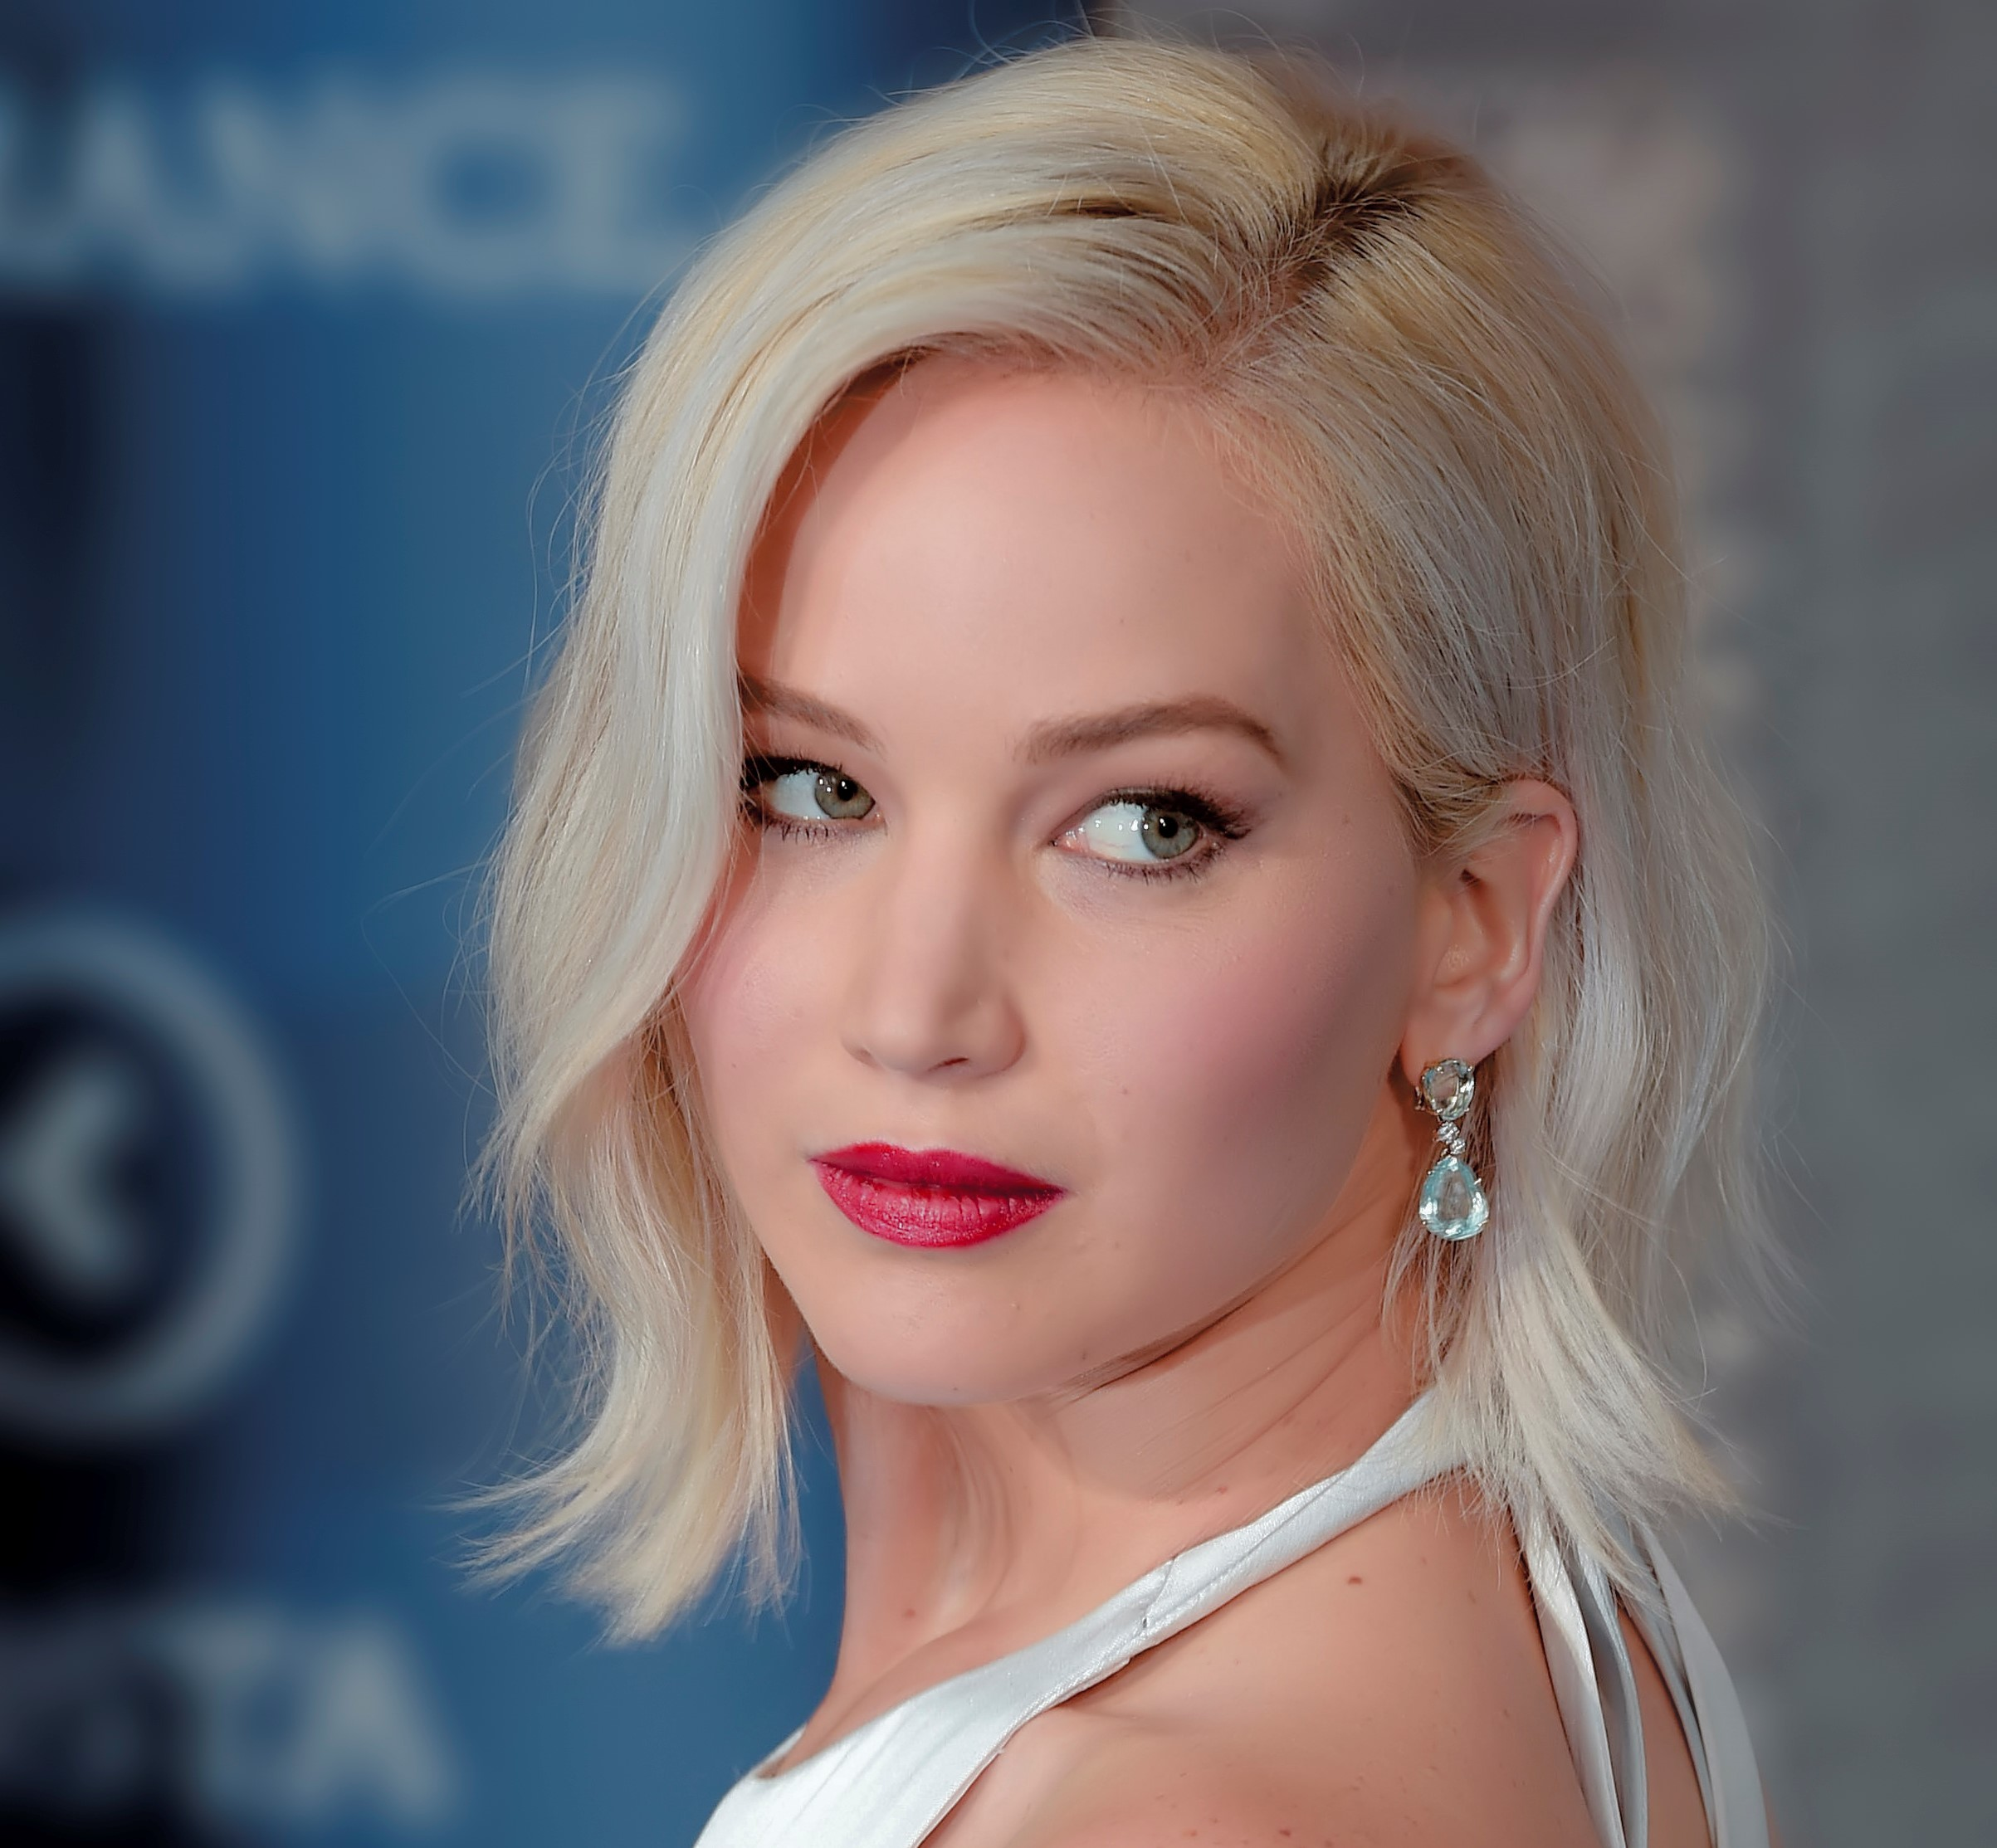 Jennifer Lawrence Biography – Early Life, Movies, Awards, Family & Net Worth